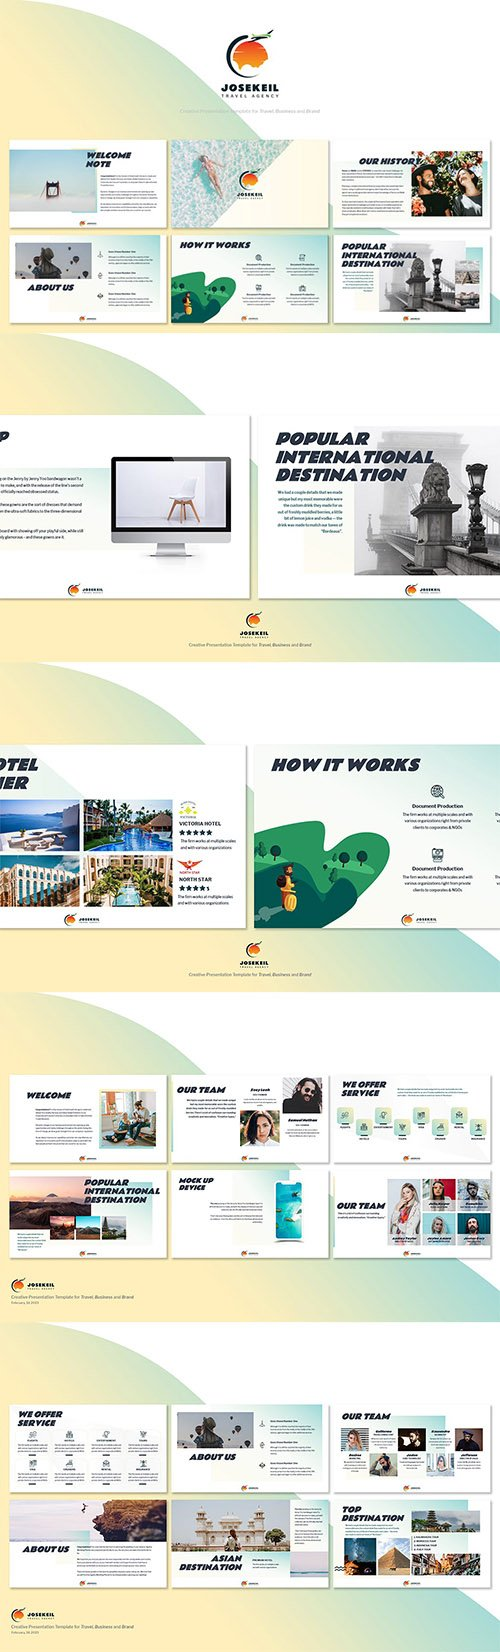 Josekeil - Travel Agency Powerpoint Template